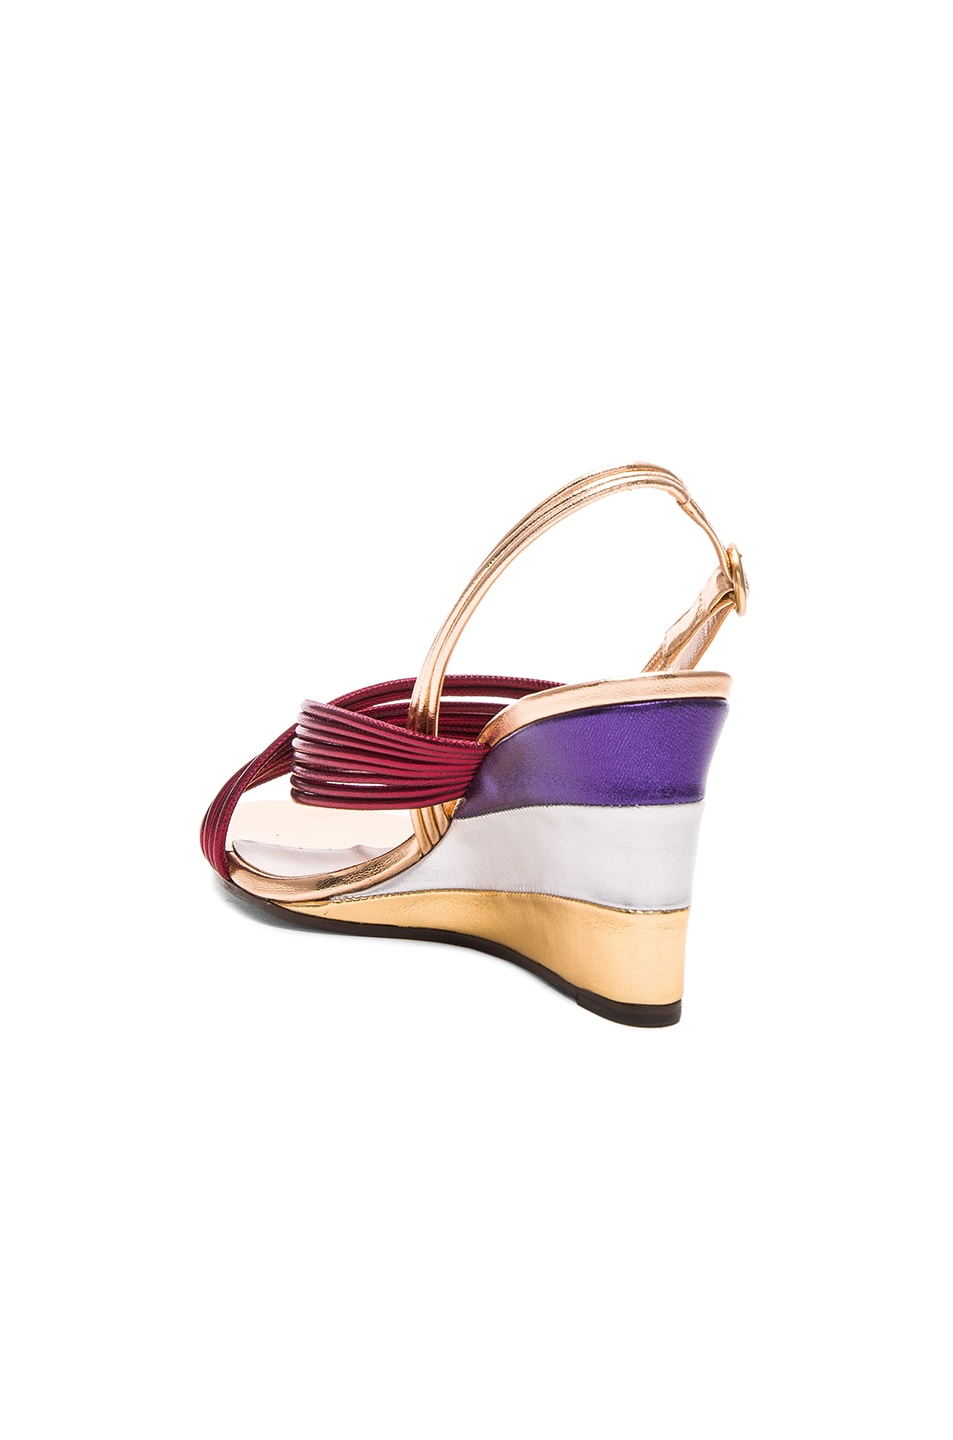 Image 3 of Chloe Leather Rainbow Sandals in Bordeaux Metallic